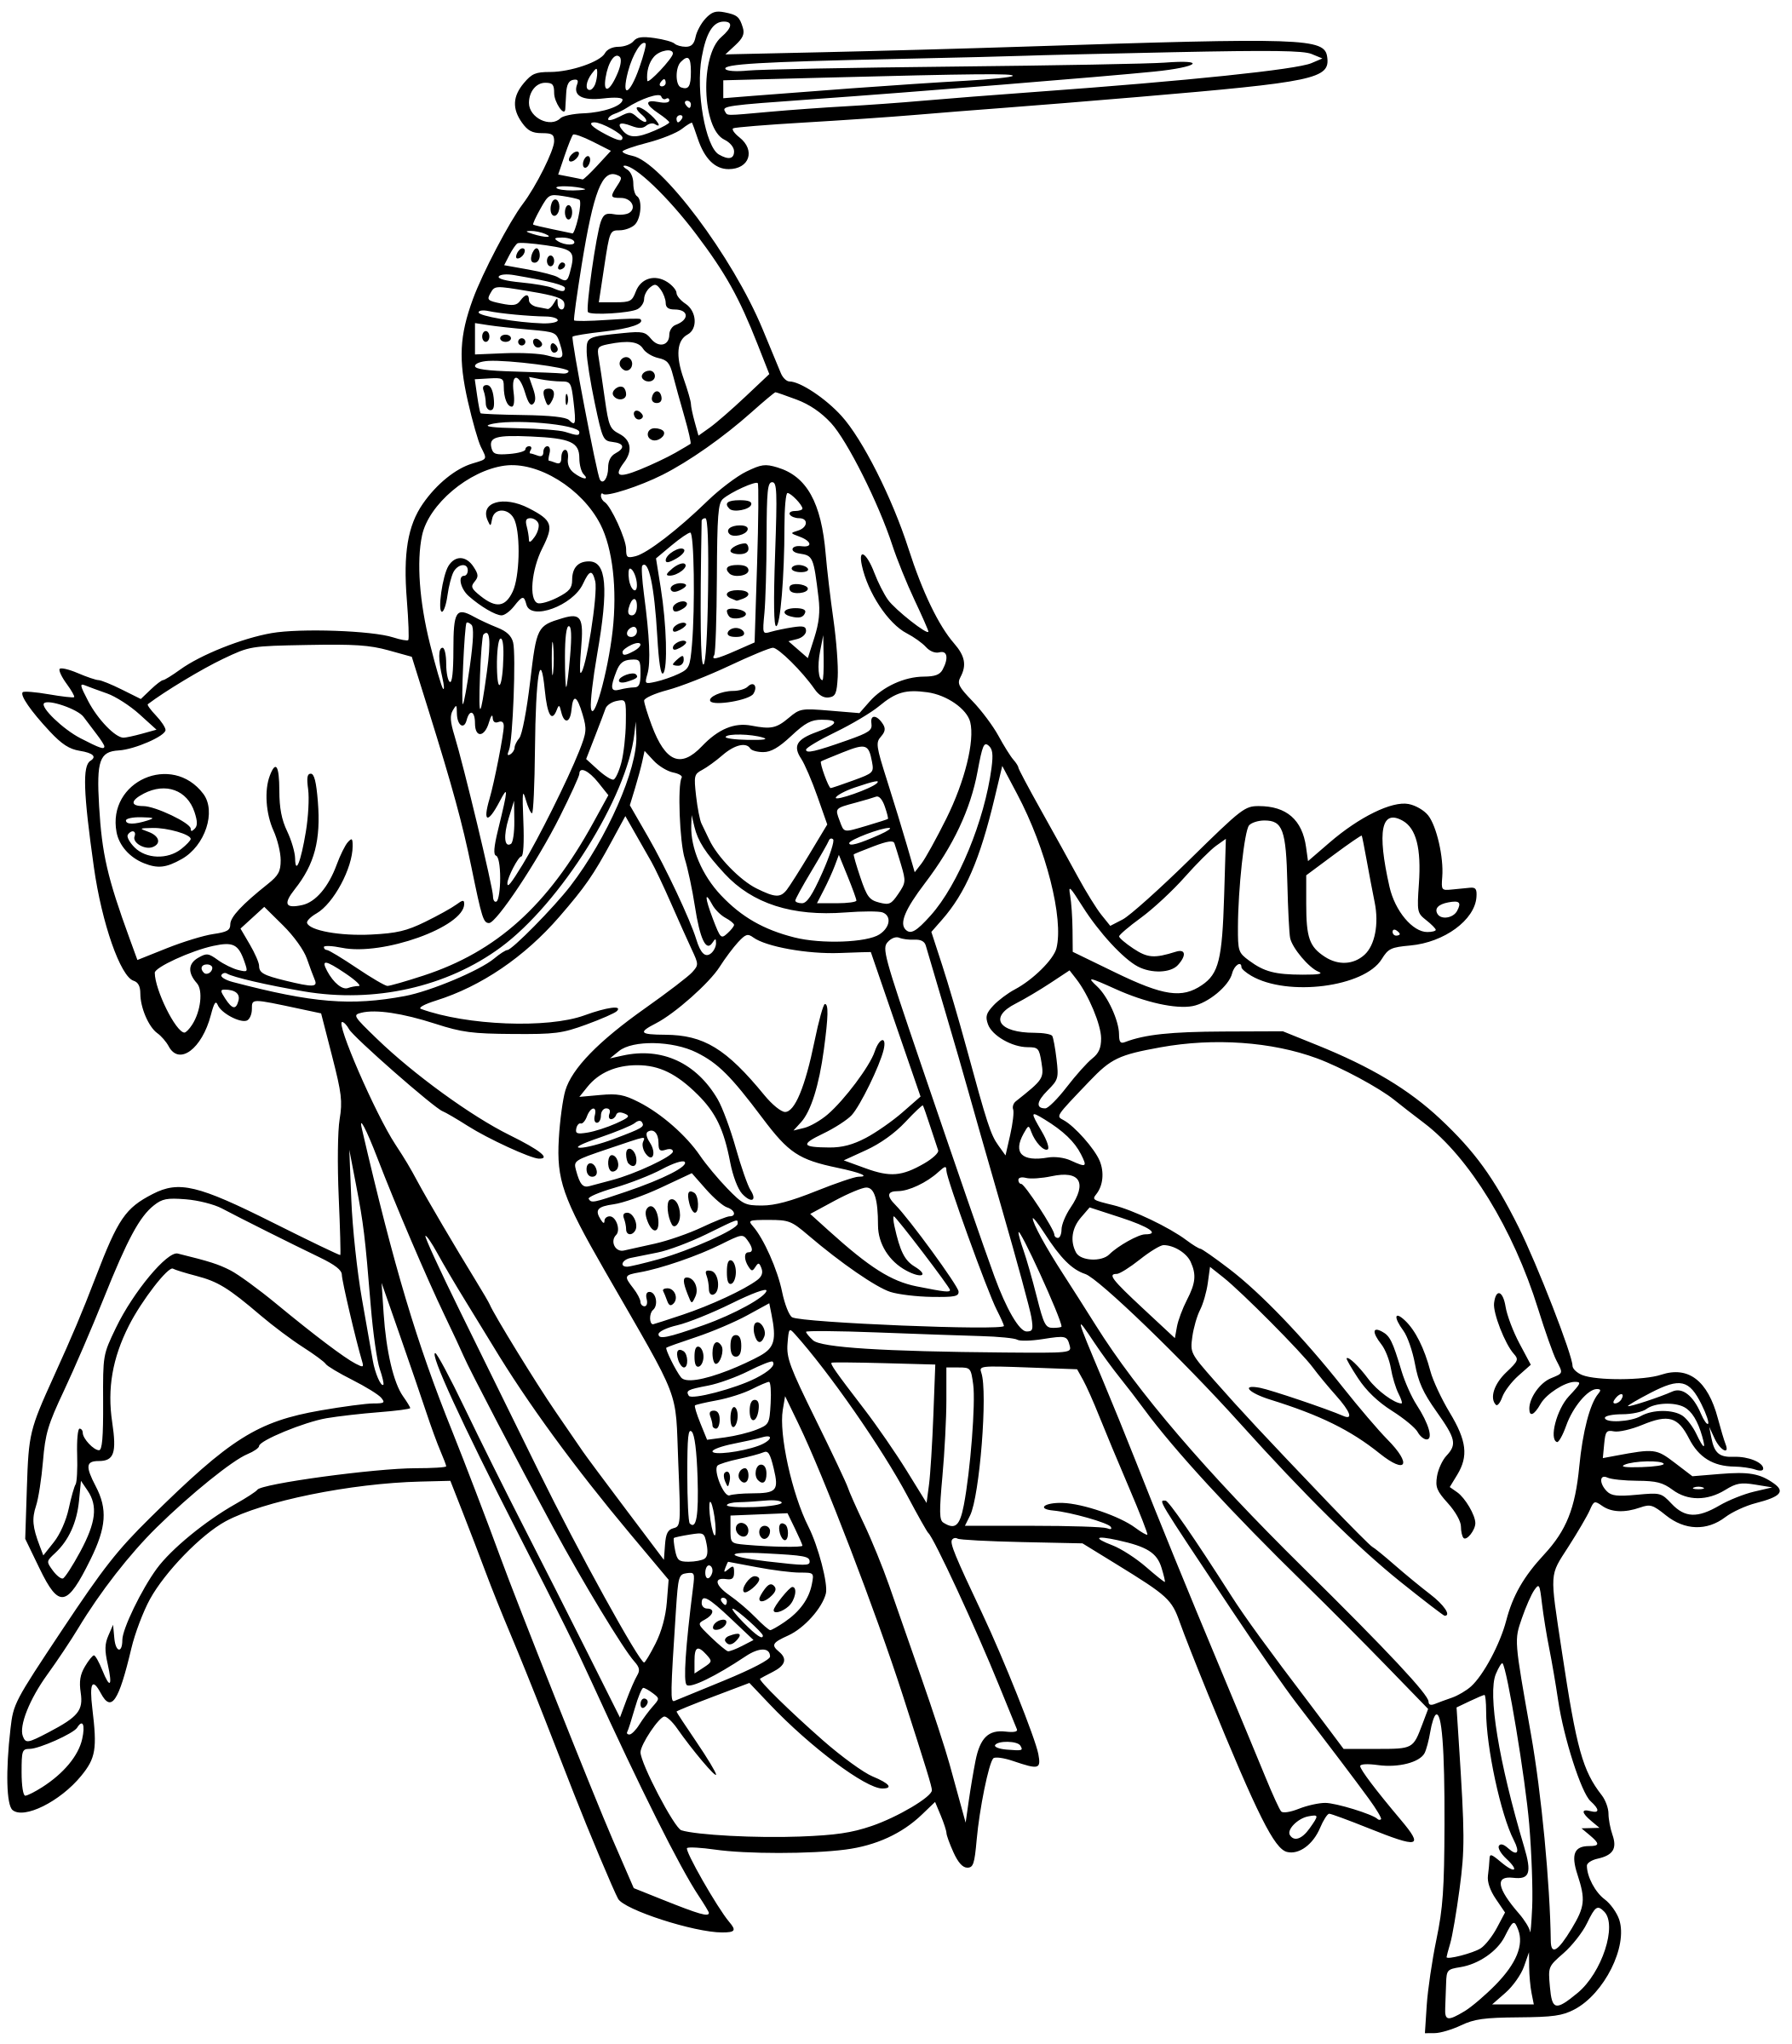 Knight Clipart For Kids Free Images 3 Gclipart